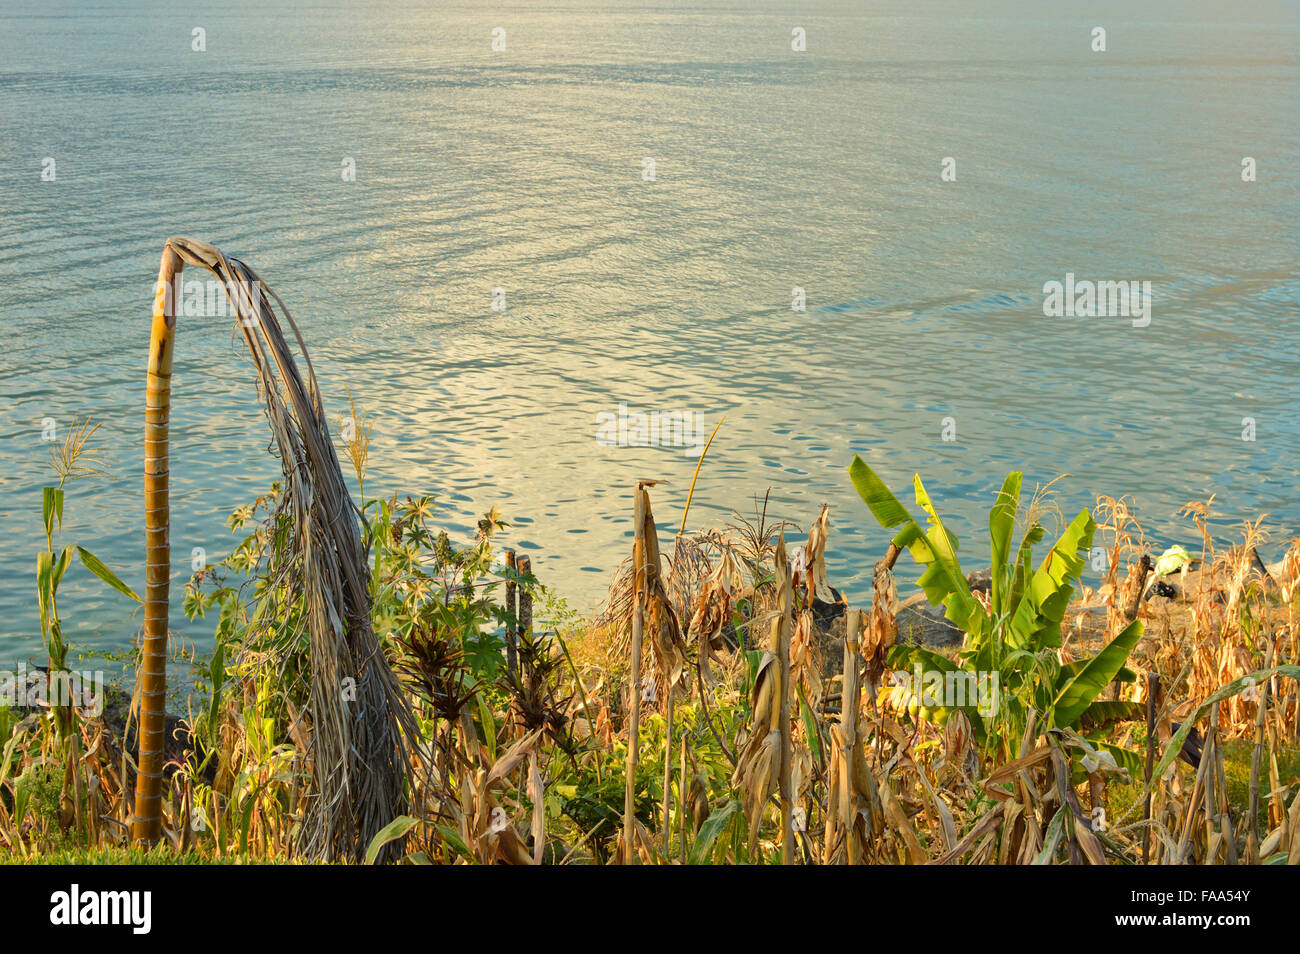 Corn field by the shore of the lake Atitlan in Guatemala - Stock Image